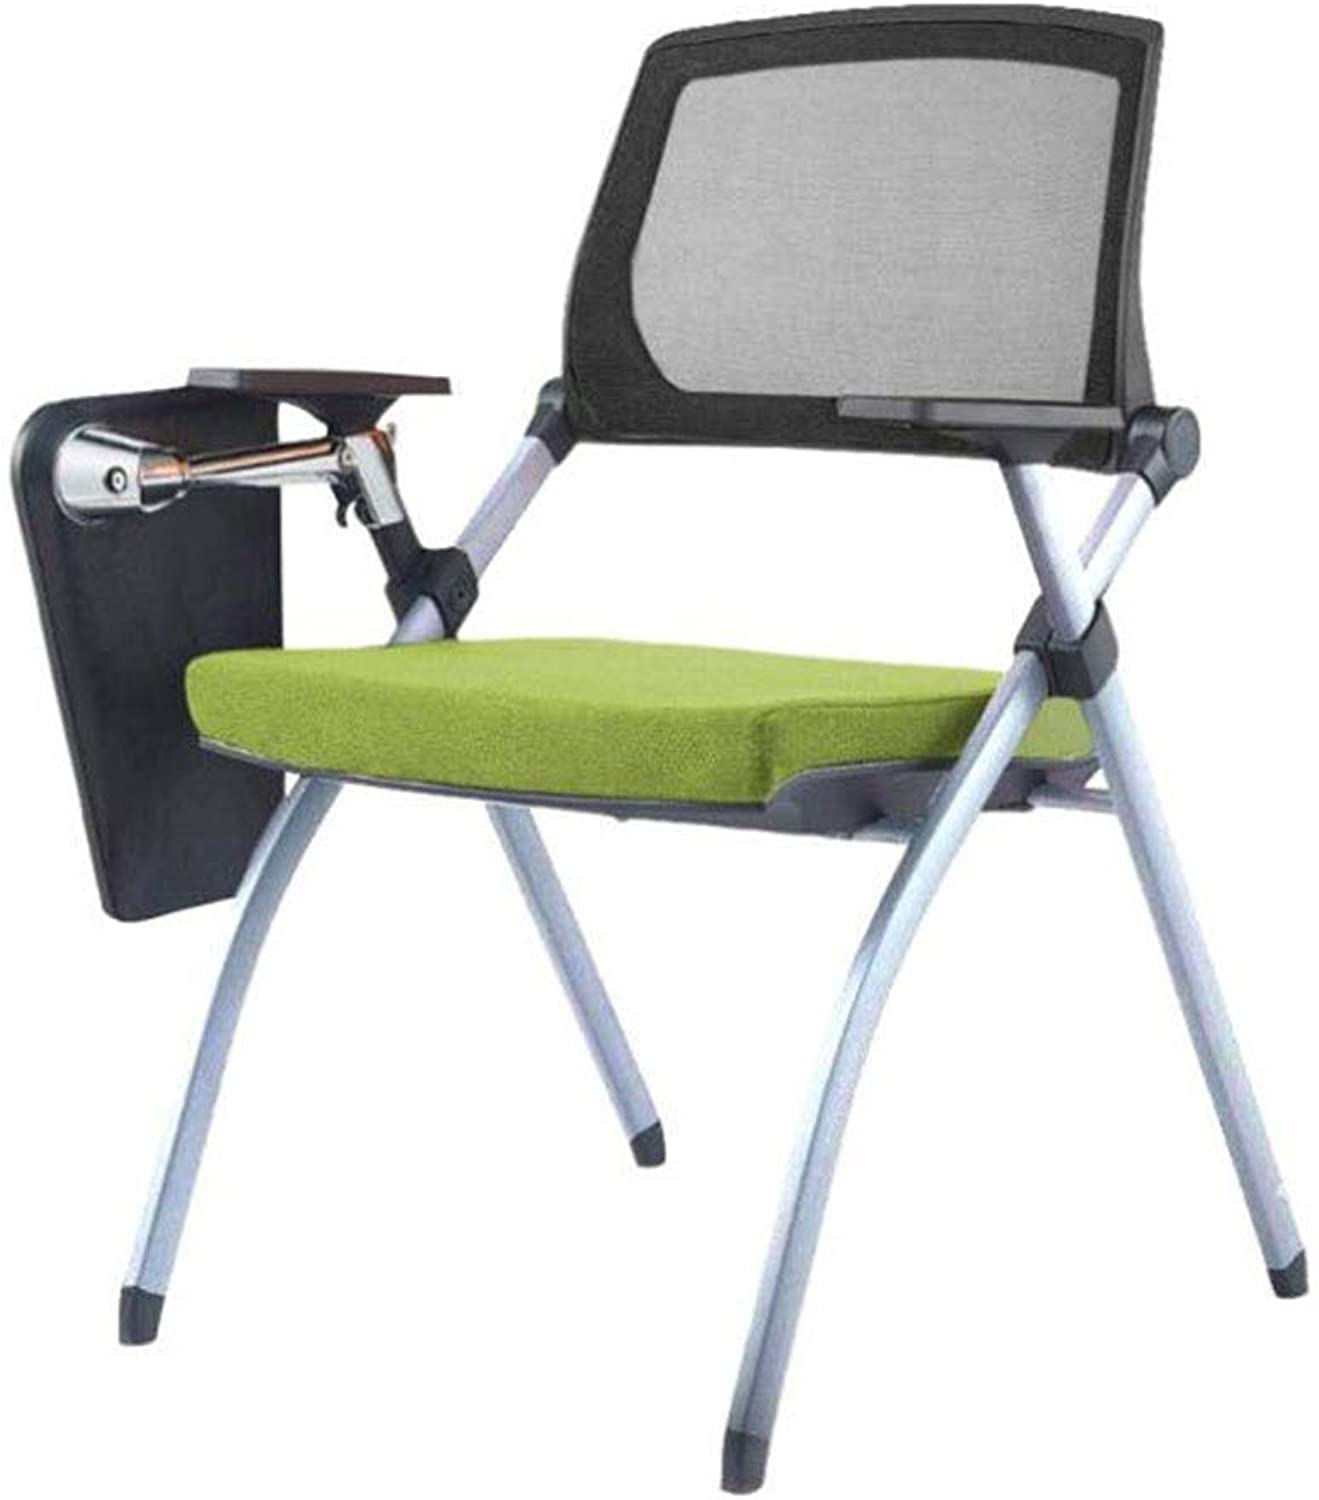 Office Chair Folding Chair Faux Leather Padded Folding Chair Home Office Dining Garden Rest Bench Padded Seat (color   Green, Size   OneSize)